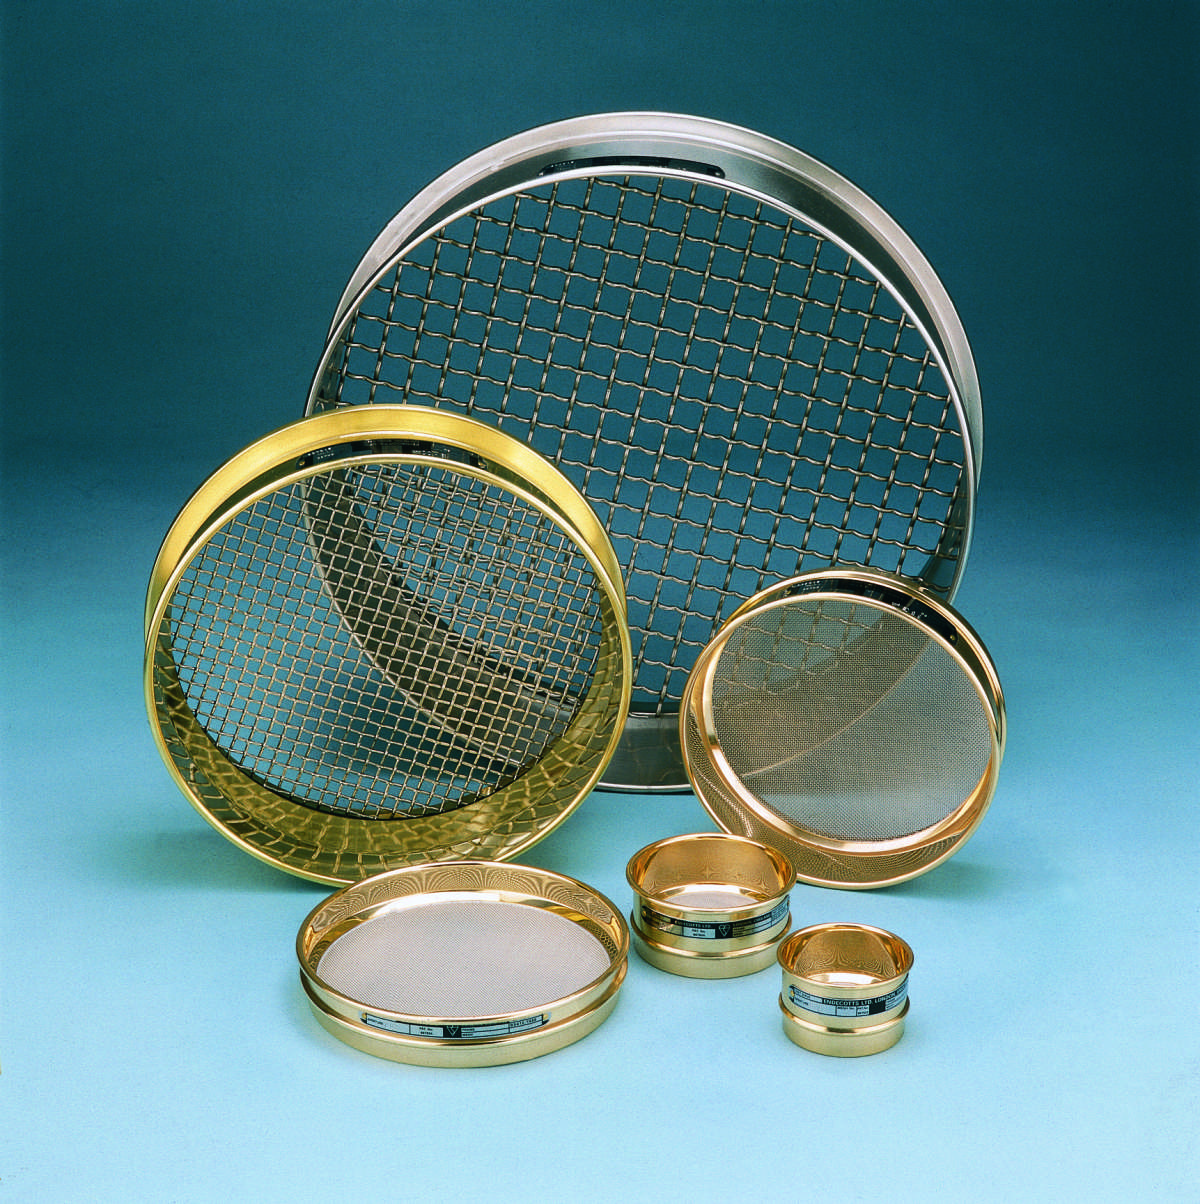 Figure 2 – Abrasive grit size is derived from ANSI and FEPA measurement systems based on ASTM E-11 standard compliant mesh test sieves. (Source: CSC Scientific Company)